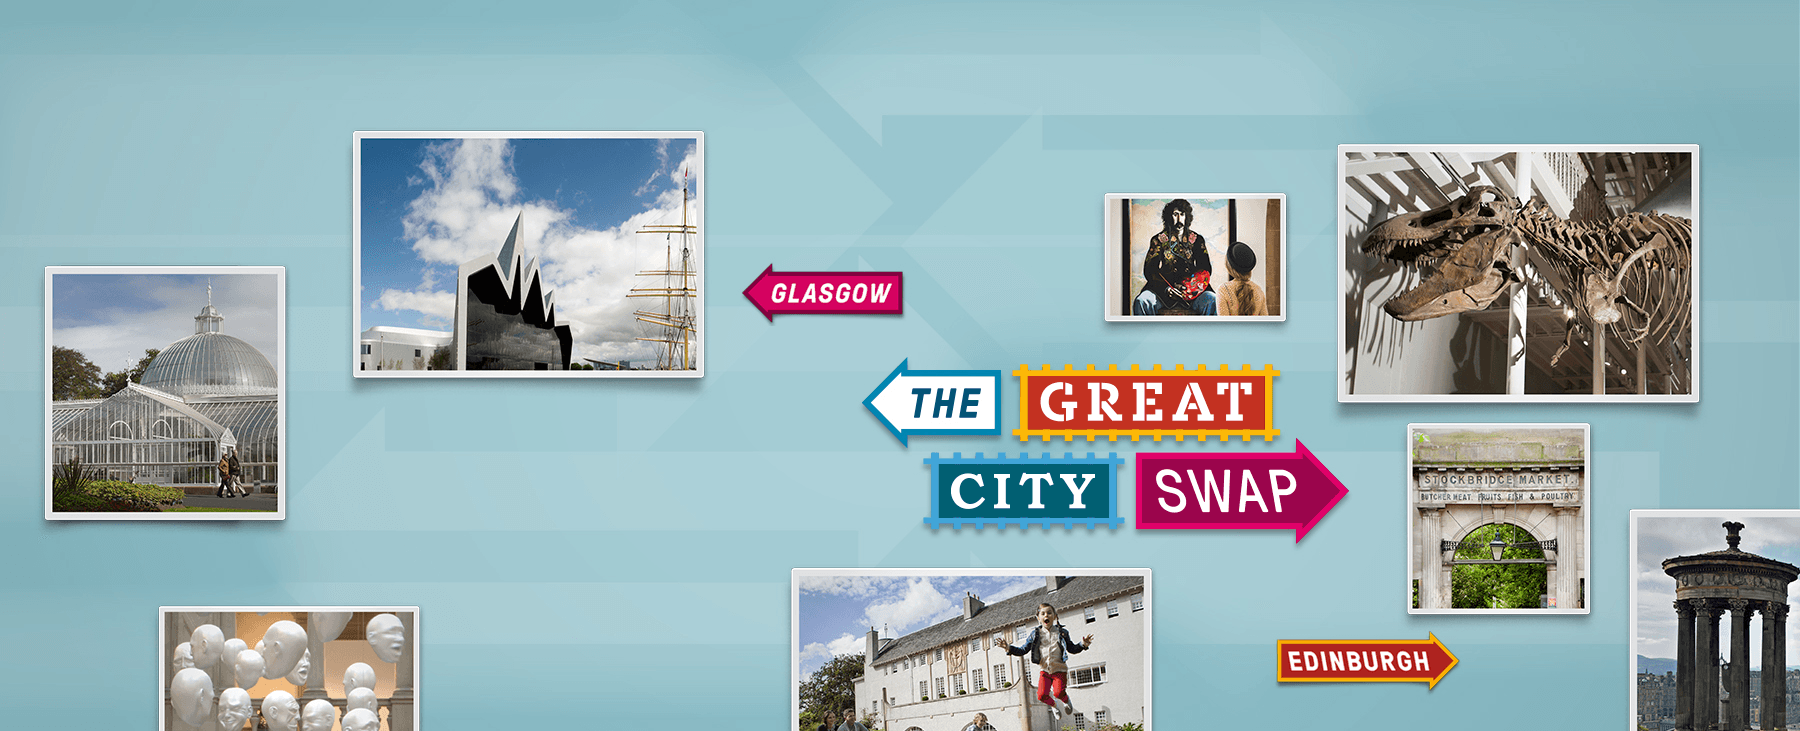 The Great City Swap - Glasgow - Edinburgh